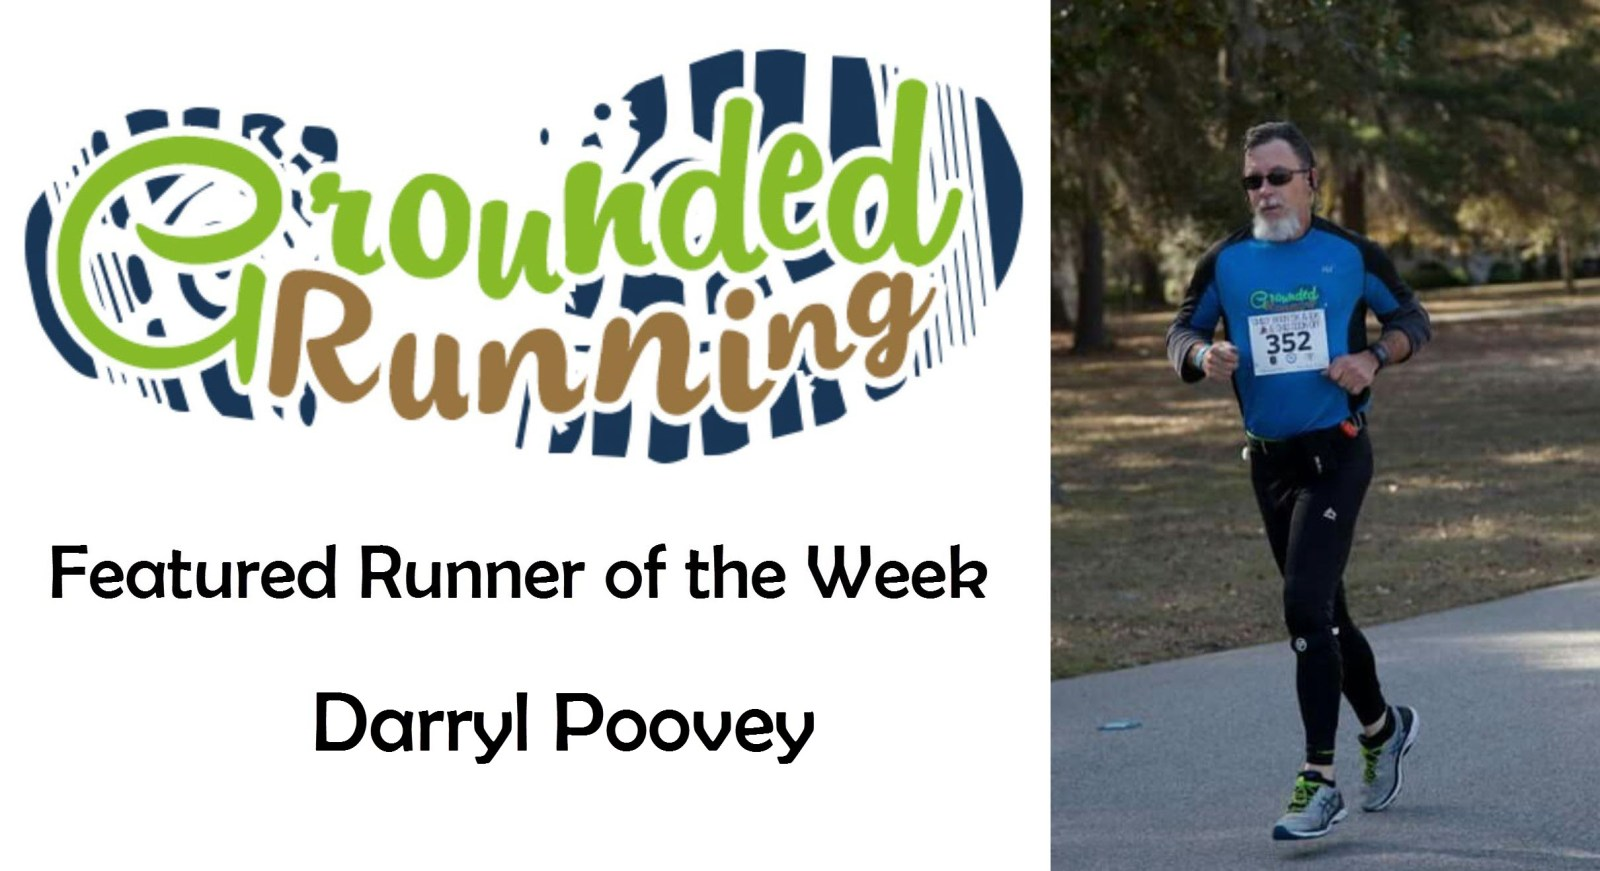 Darryl Poovey – Featured Runner of the Week